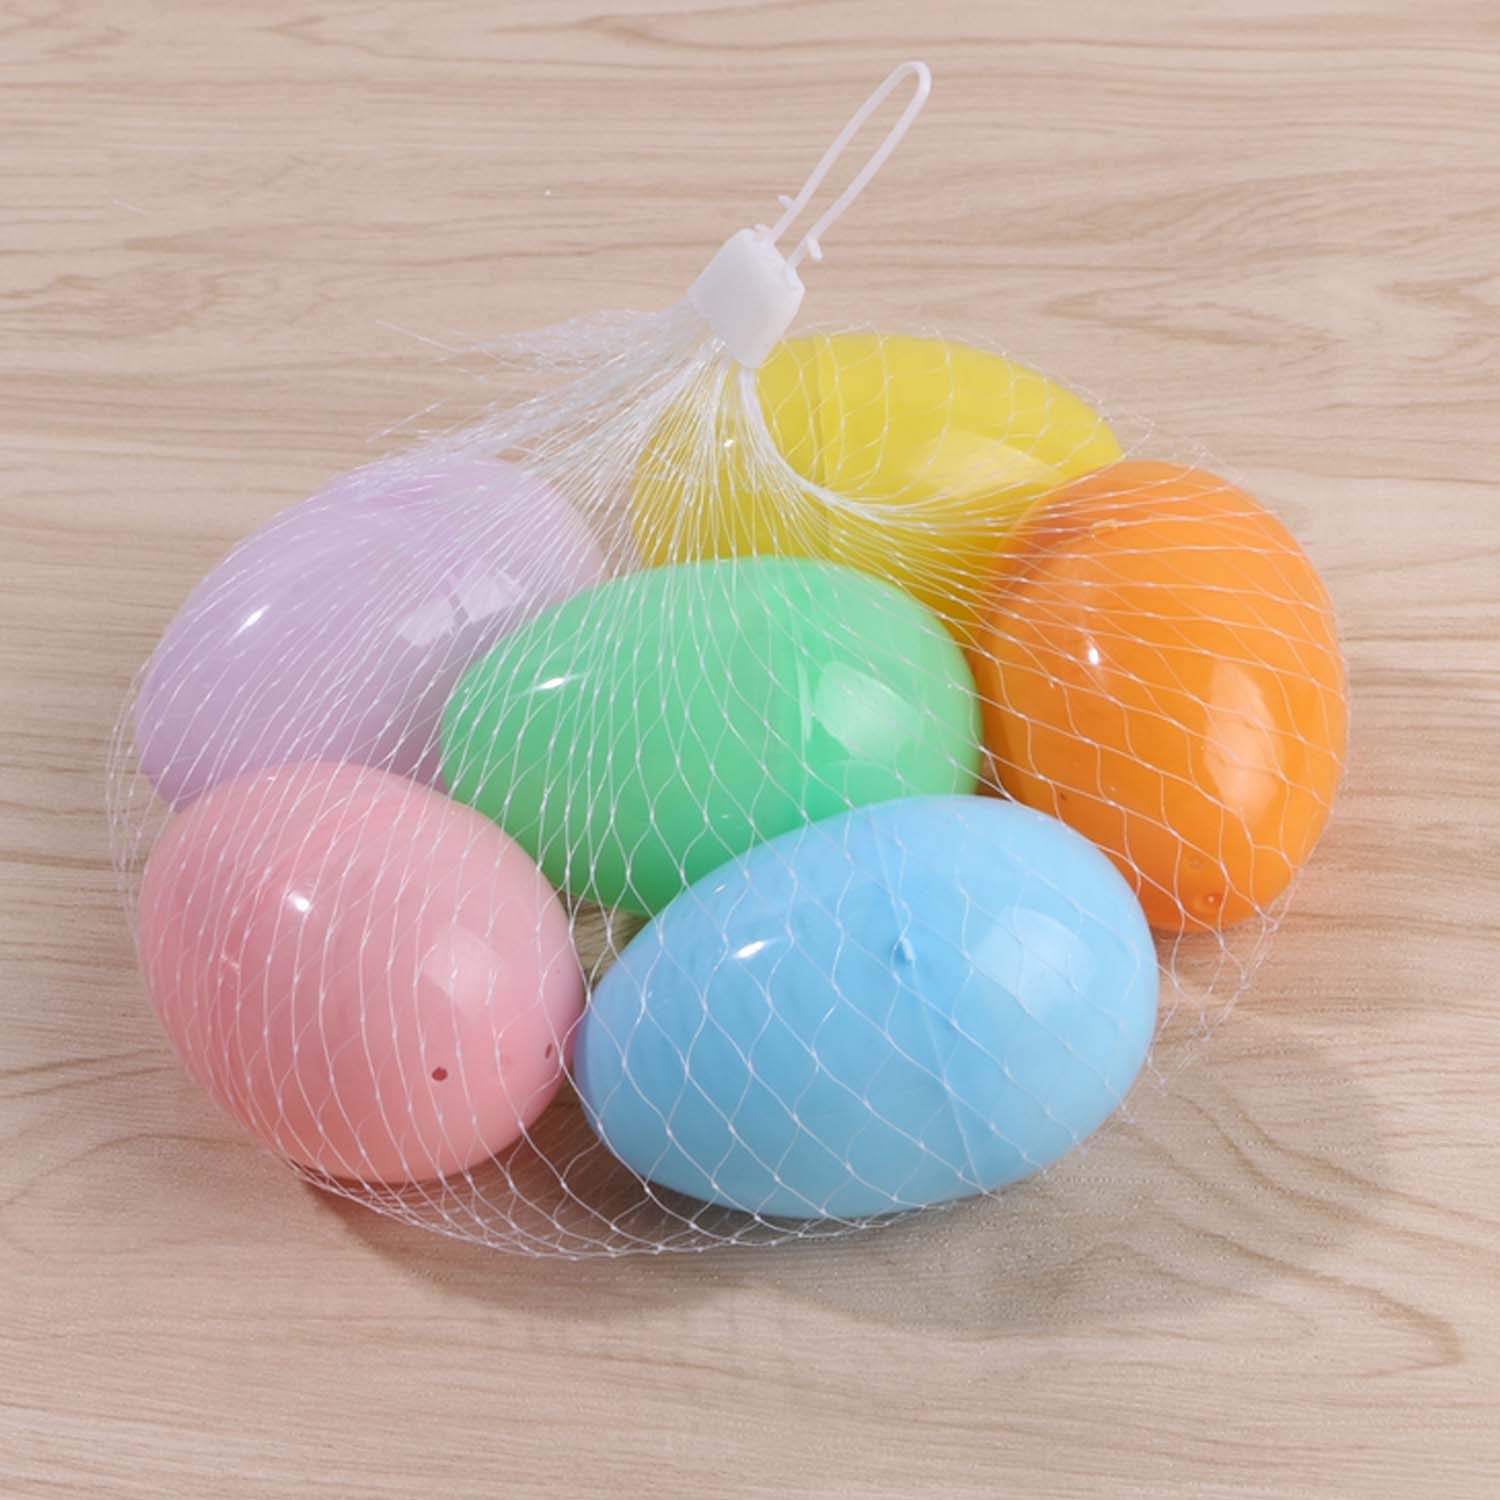 Besegad 6Colors Kids DIY Fillable Empty Easter Egg Simulation Fake Plastic Artificial Eggs Set Easter Home Party Decorations Toy